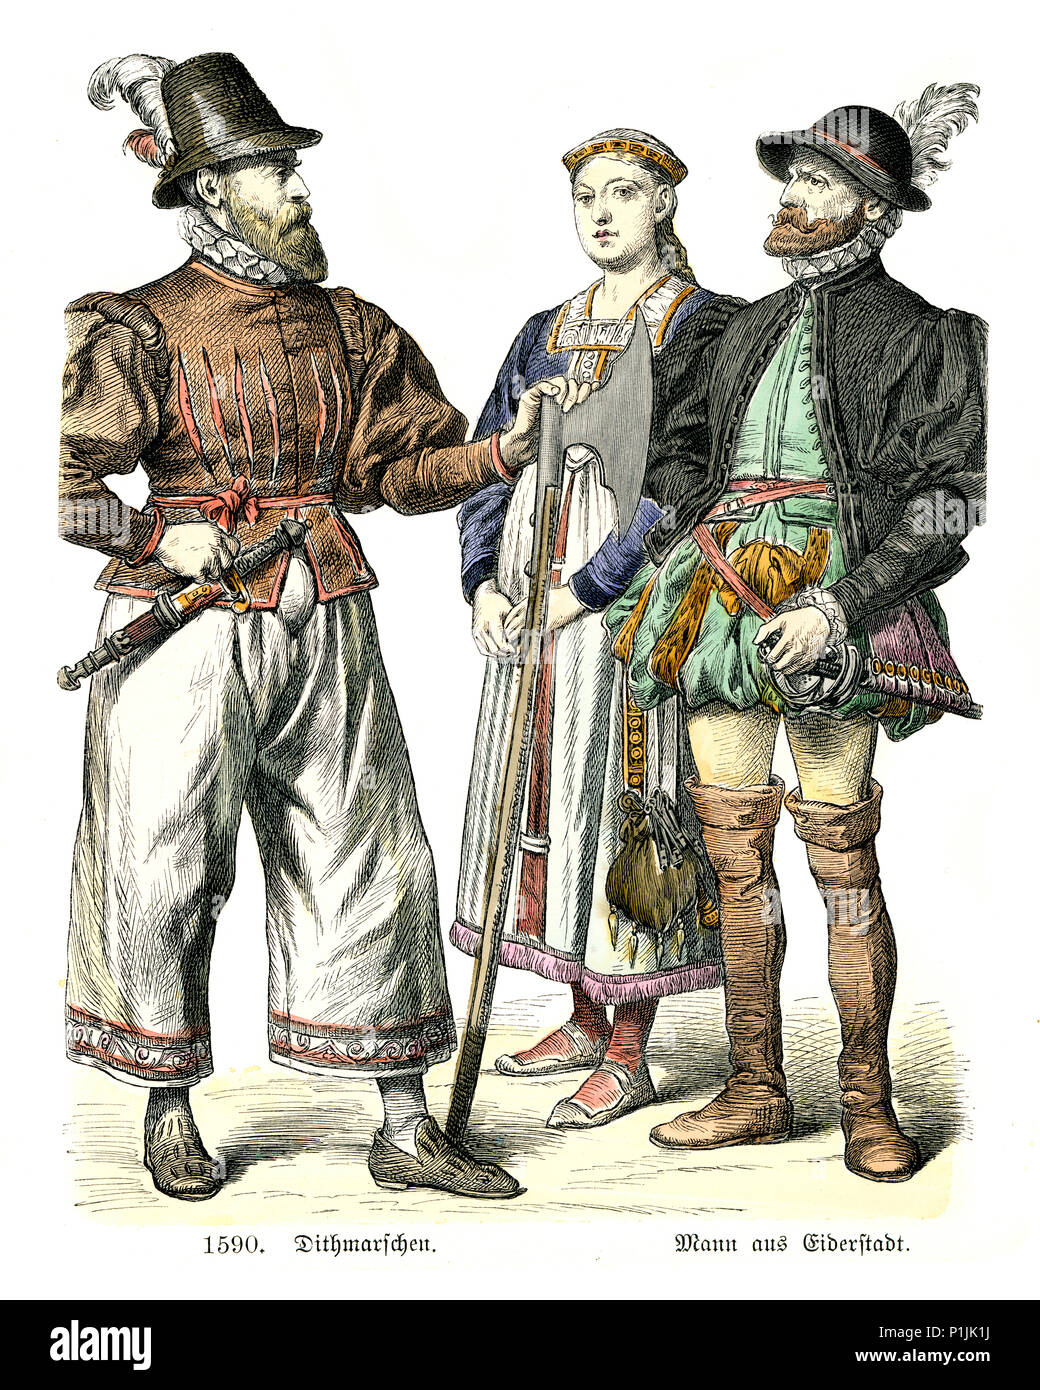 Vintage engraving of History of Fashion, Costumes of Germany 16th Century. Man and woman of Eiderstedt, Schleswig-Holstein and man of Dithmarschen, 15 - Stock Image